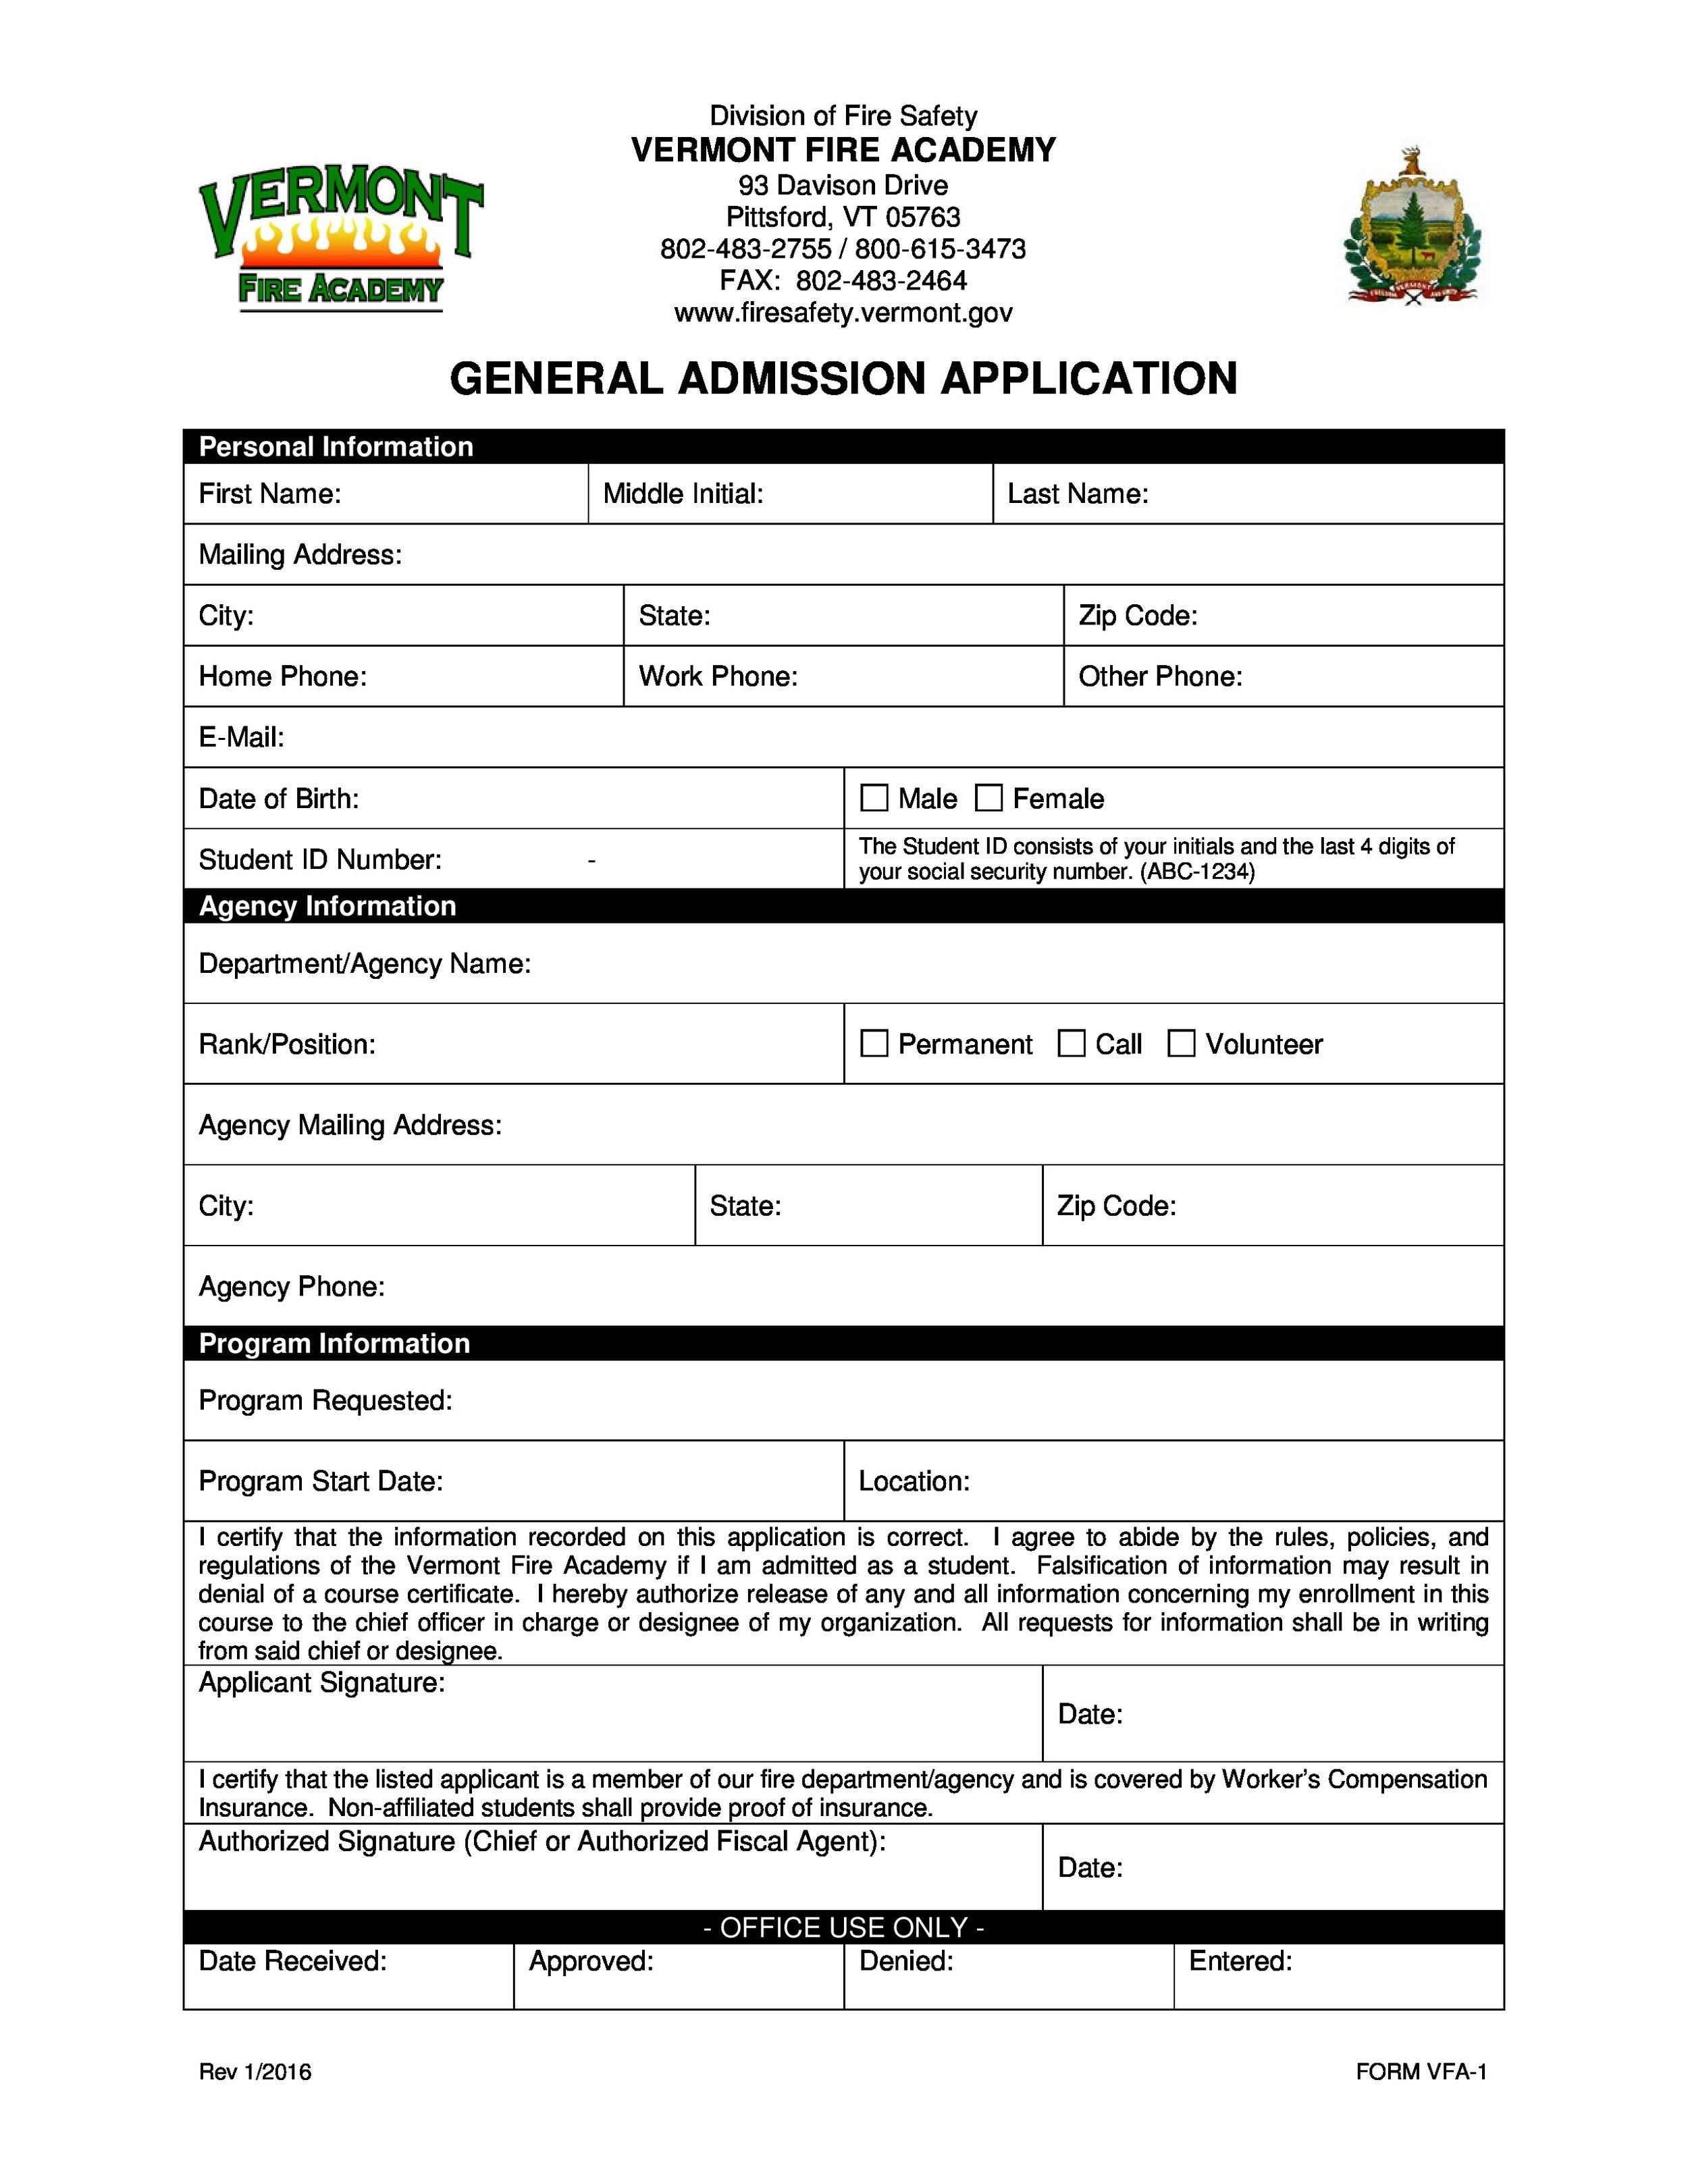 vfa_1_general_admission_application-page-0.jpg